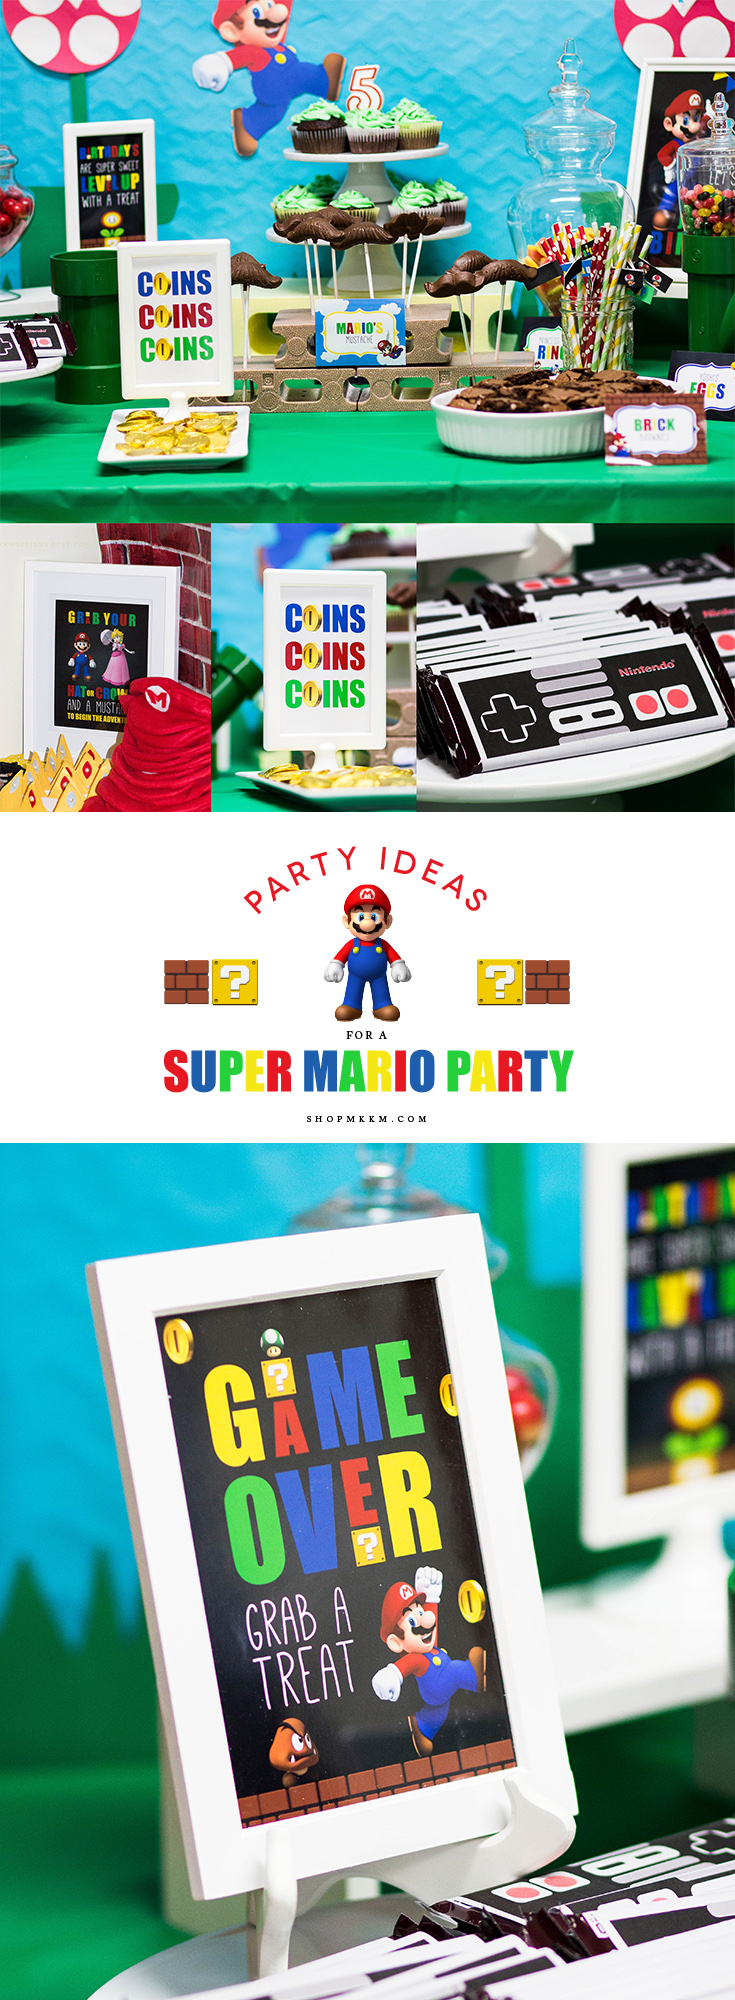 Party ideas for a Super Mario Birthday Party. Free printable signs and candy wrappers on the shopmkkm.com blog.